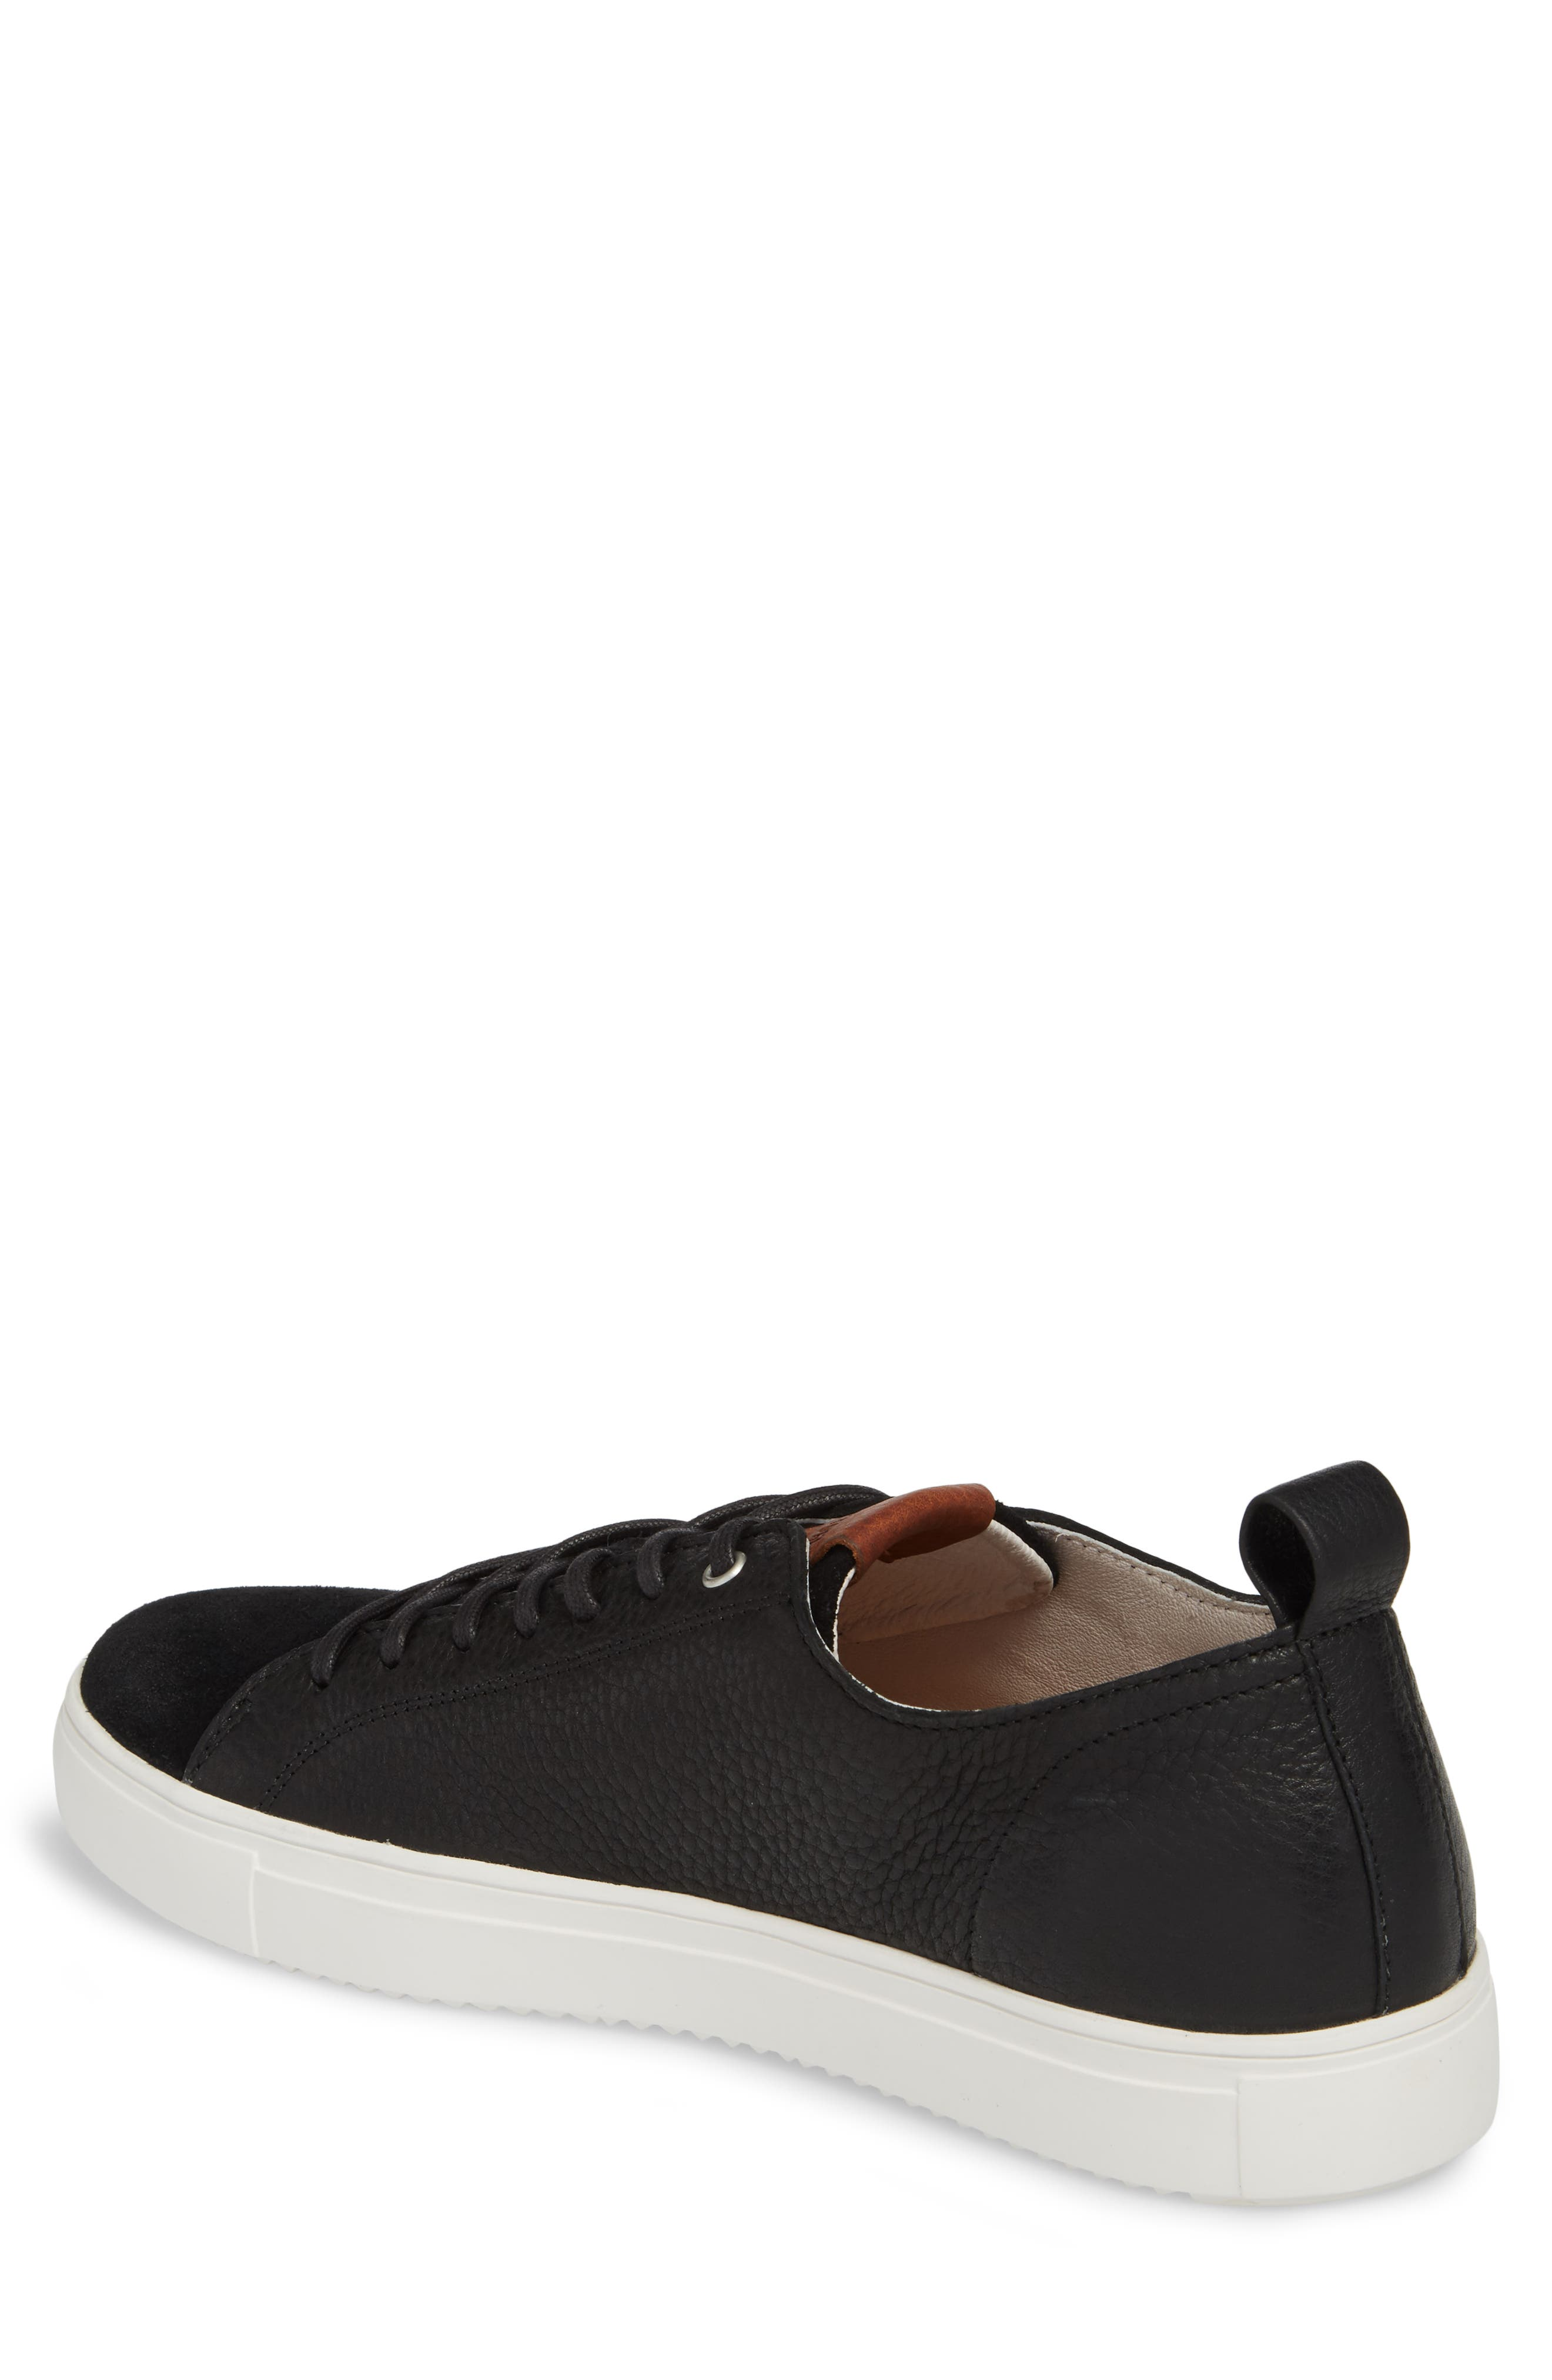 PM46 Low Top Sneaker,                             Alternate thumbnail 2, color,                             BLACK LEATHER